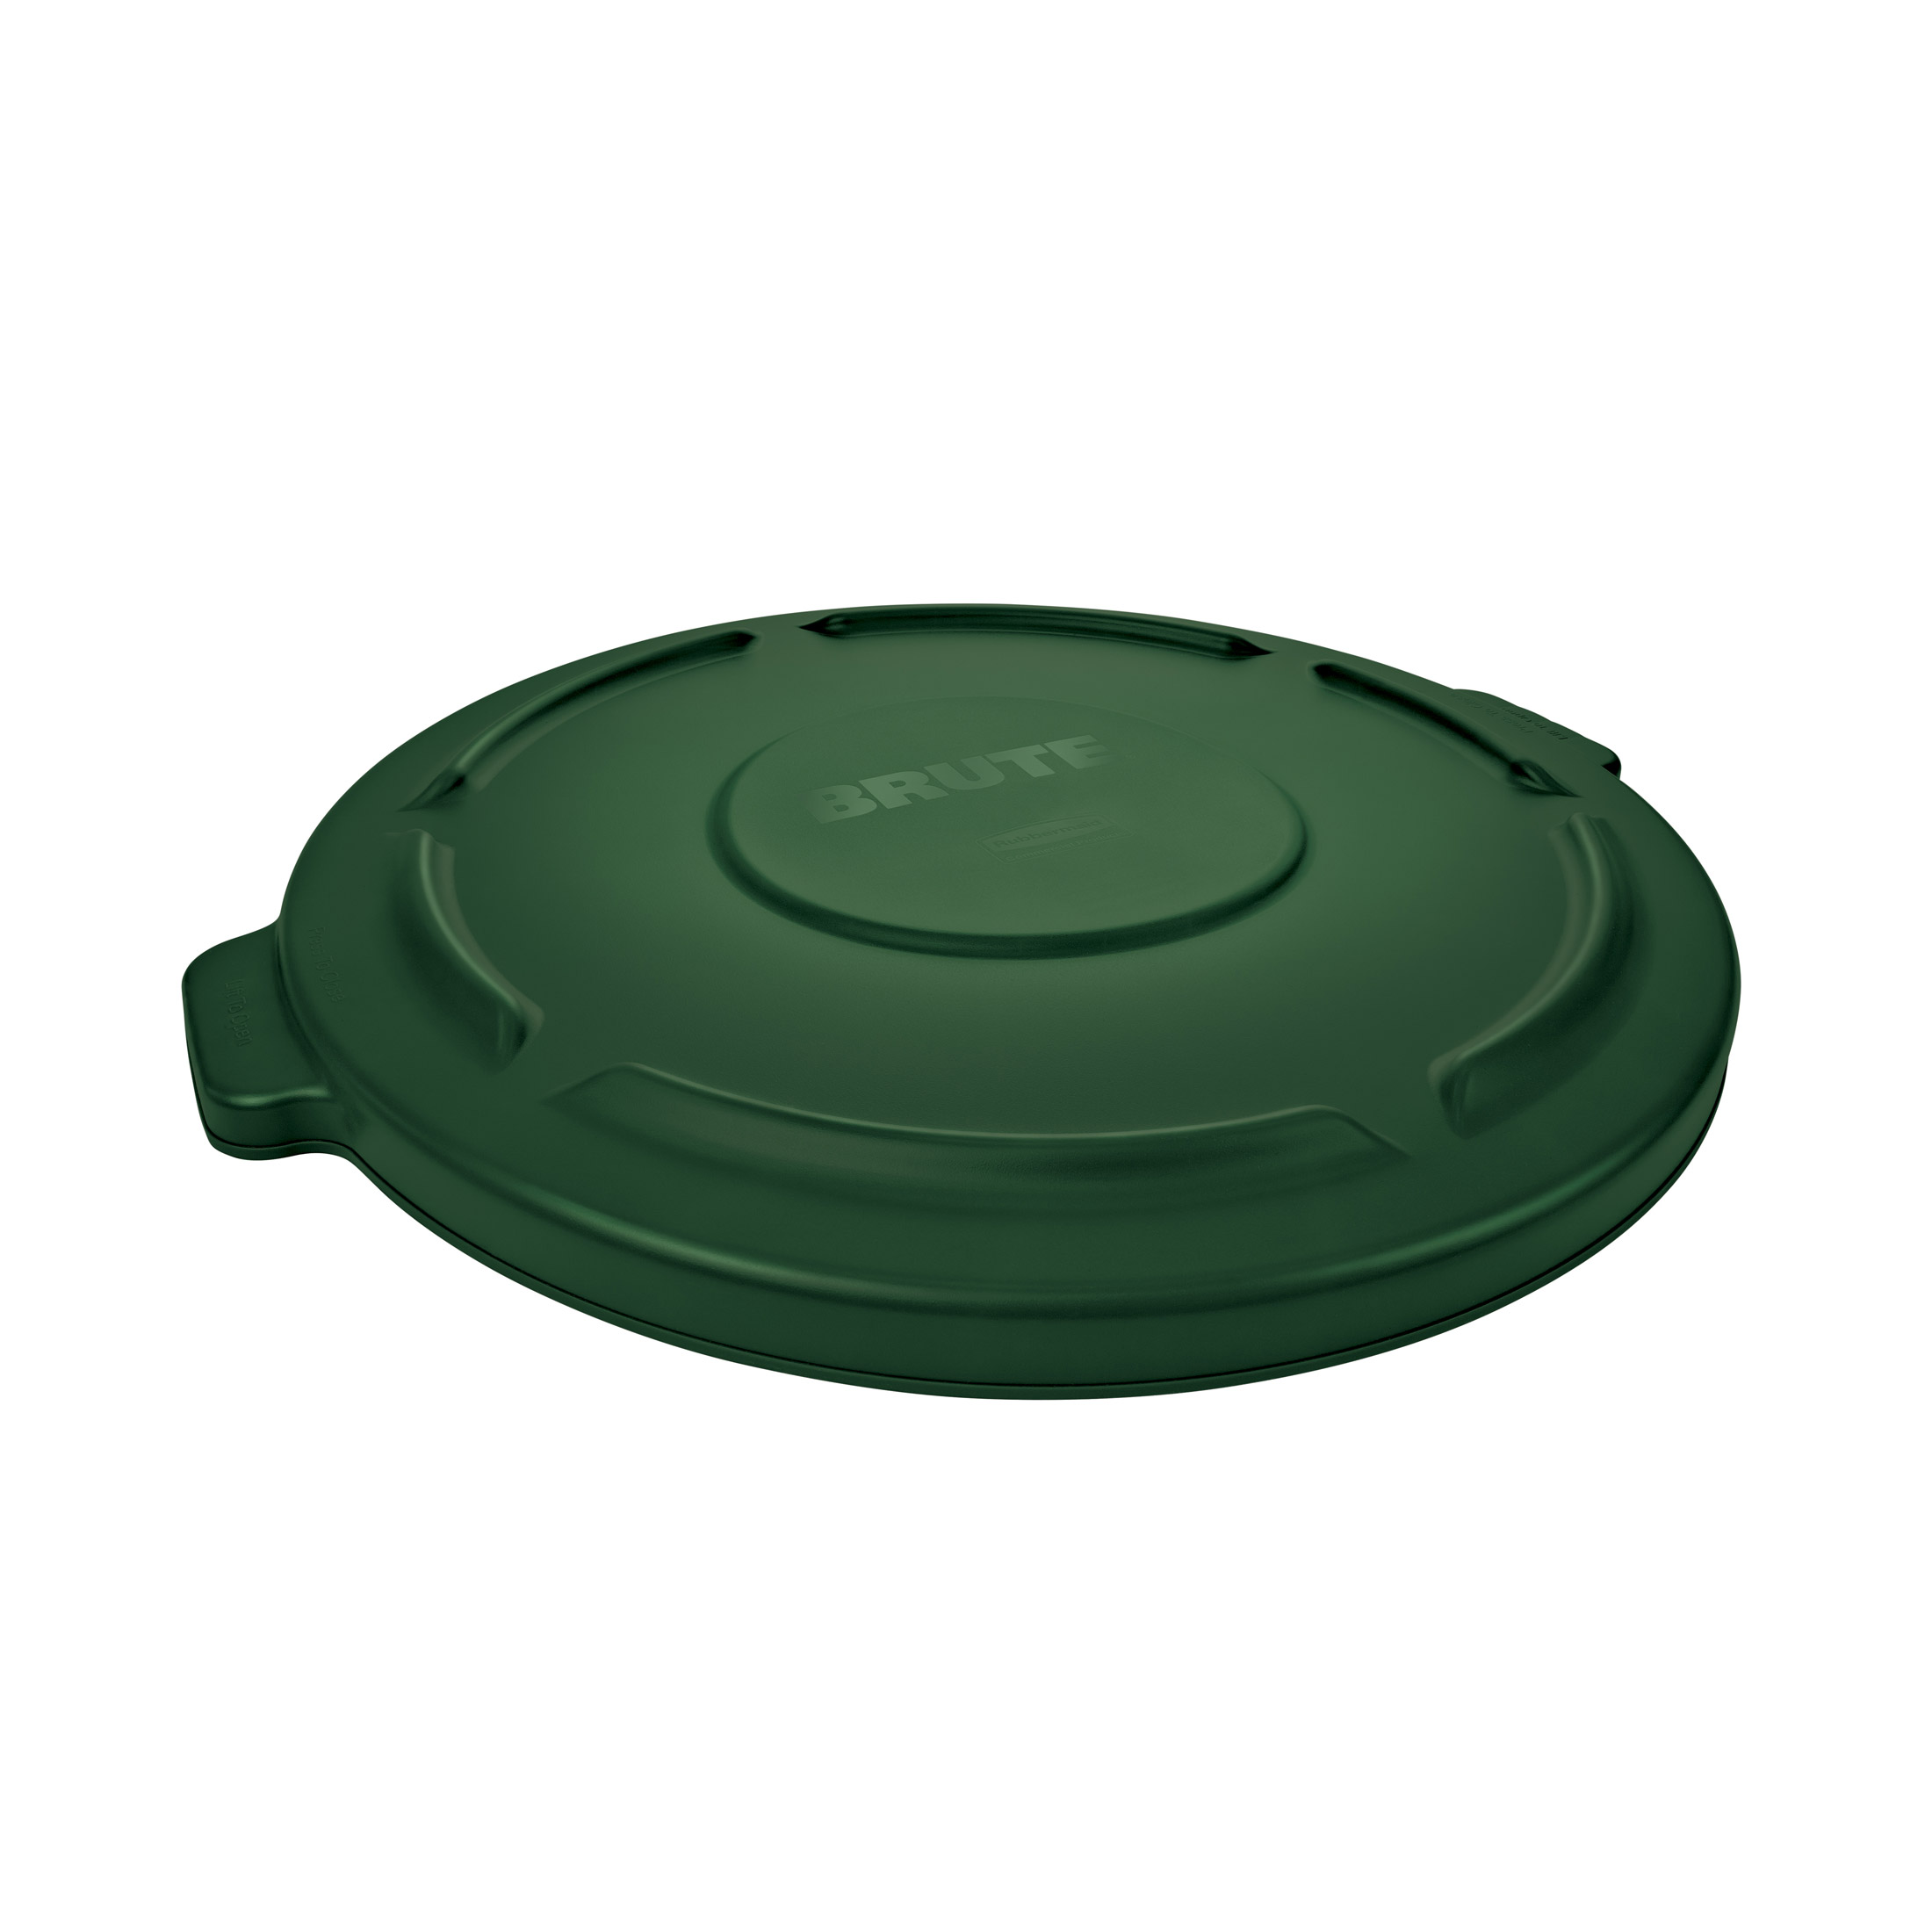 Rubbermaid Commercial Products FG260900DGRN trash receptacle lid / top